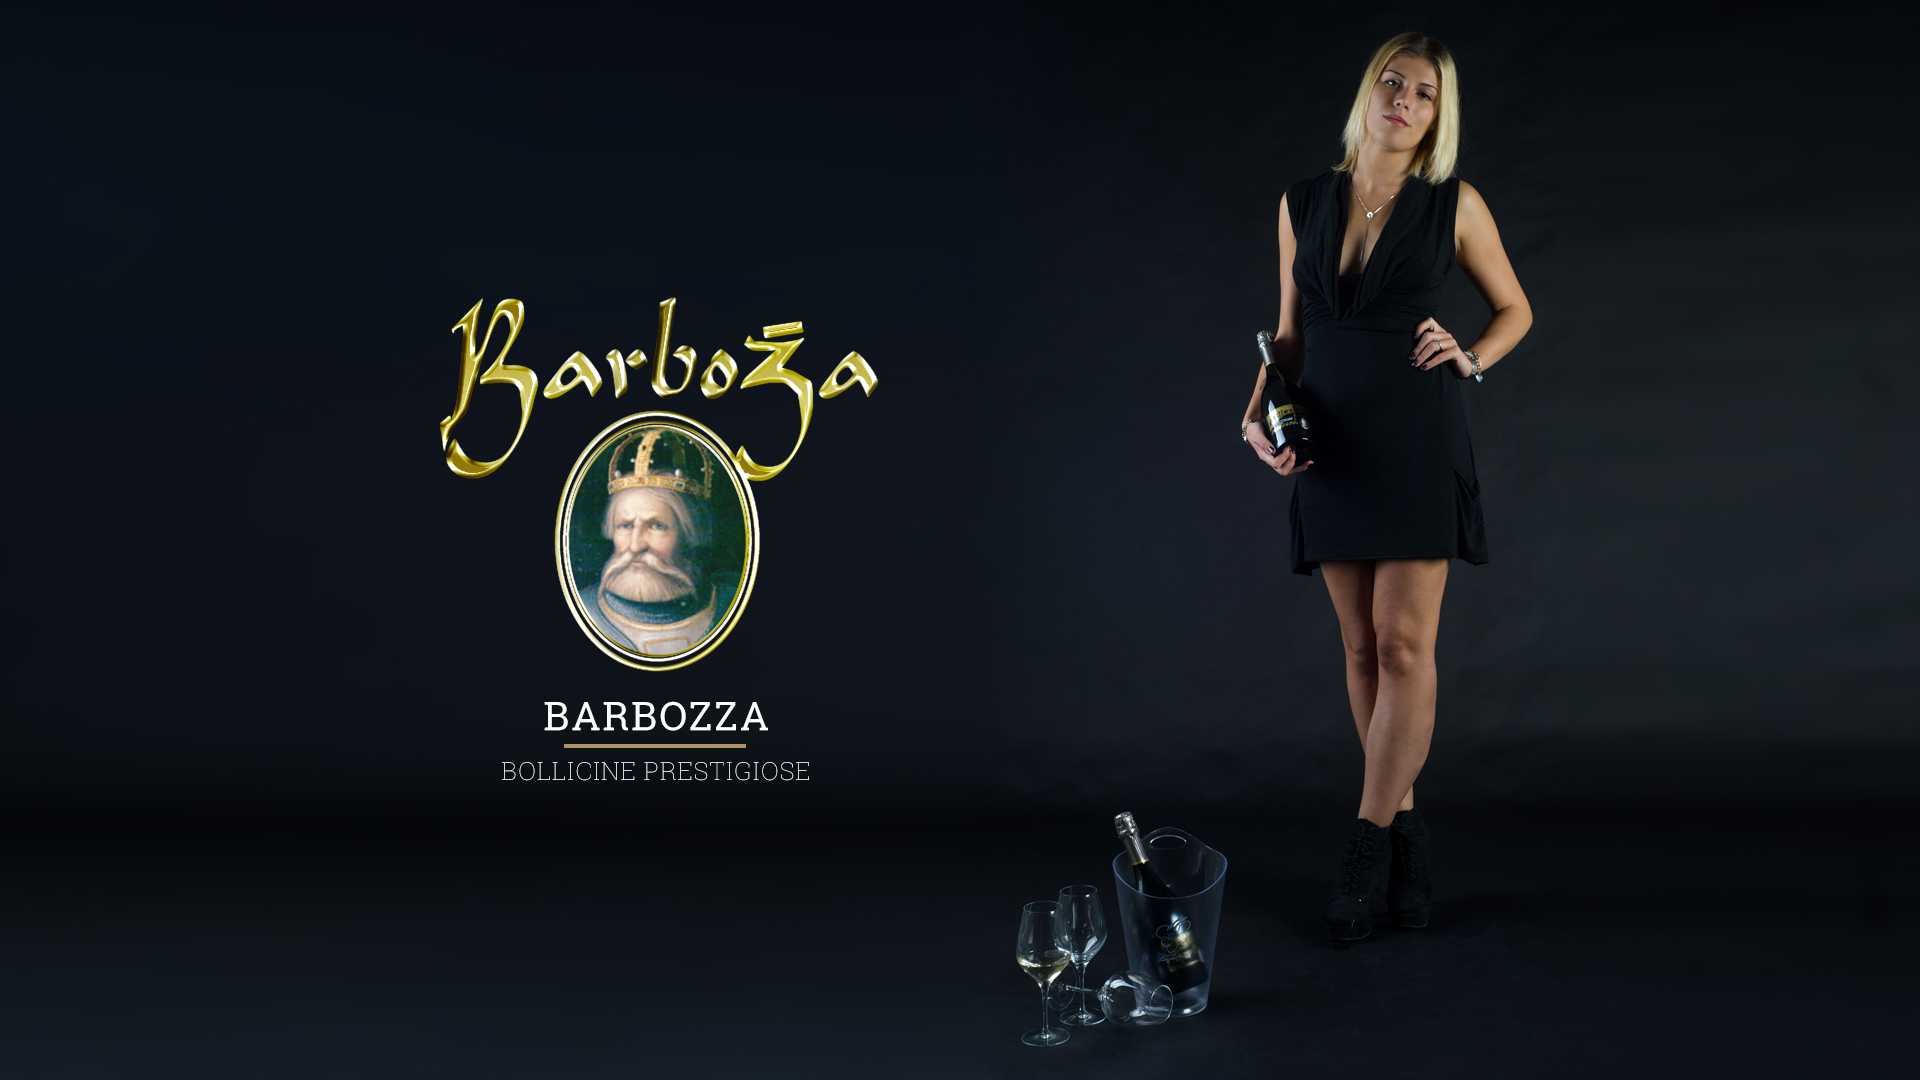 BARBOZZA it